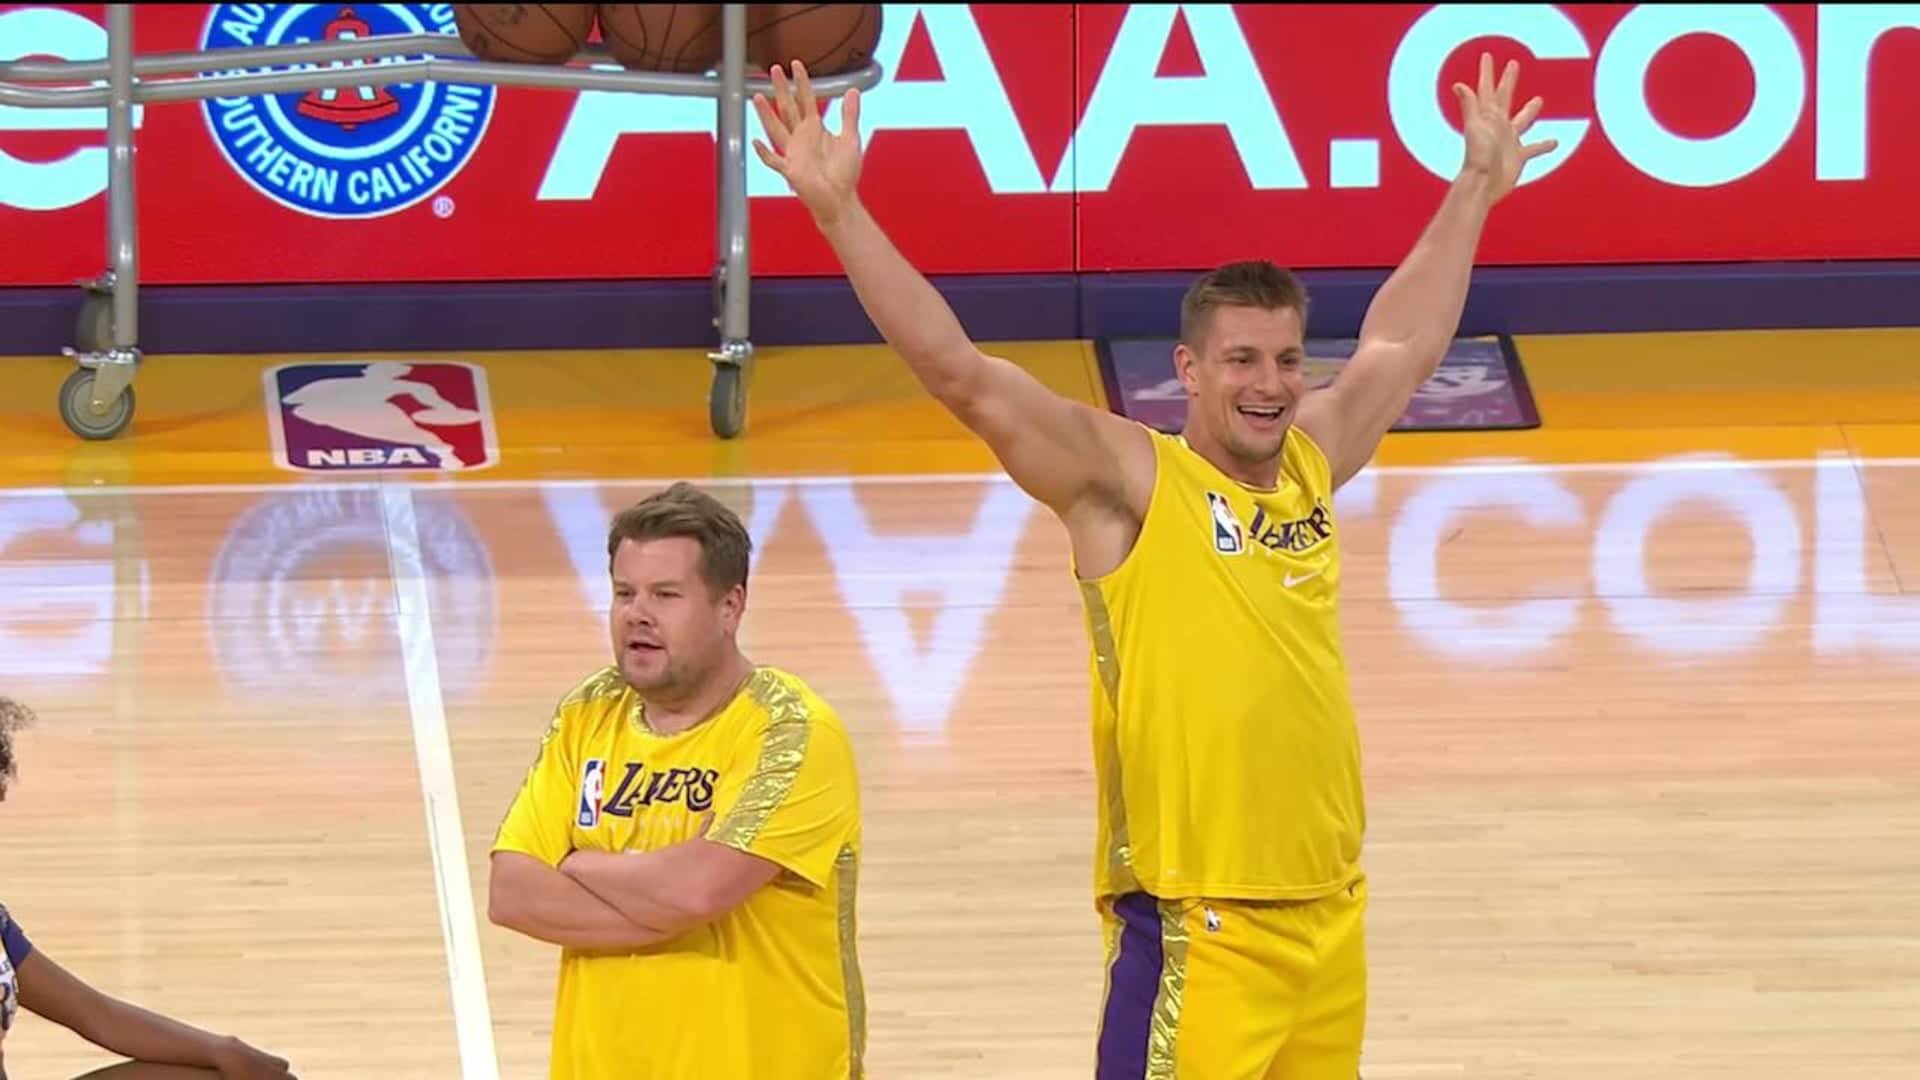 Gronk Corden And Venus Join The Laker Girls Nba Com